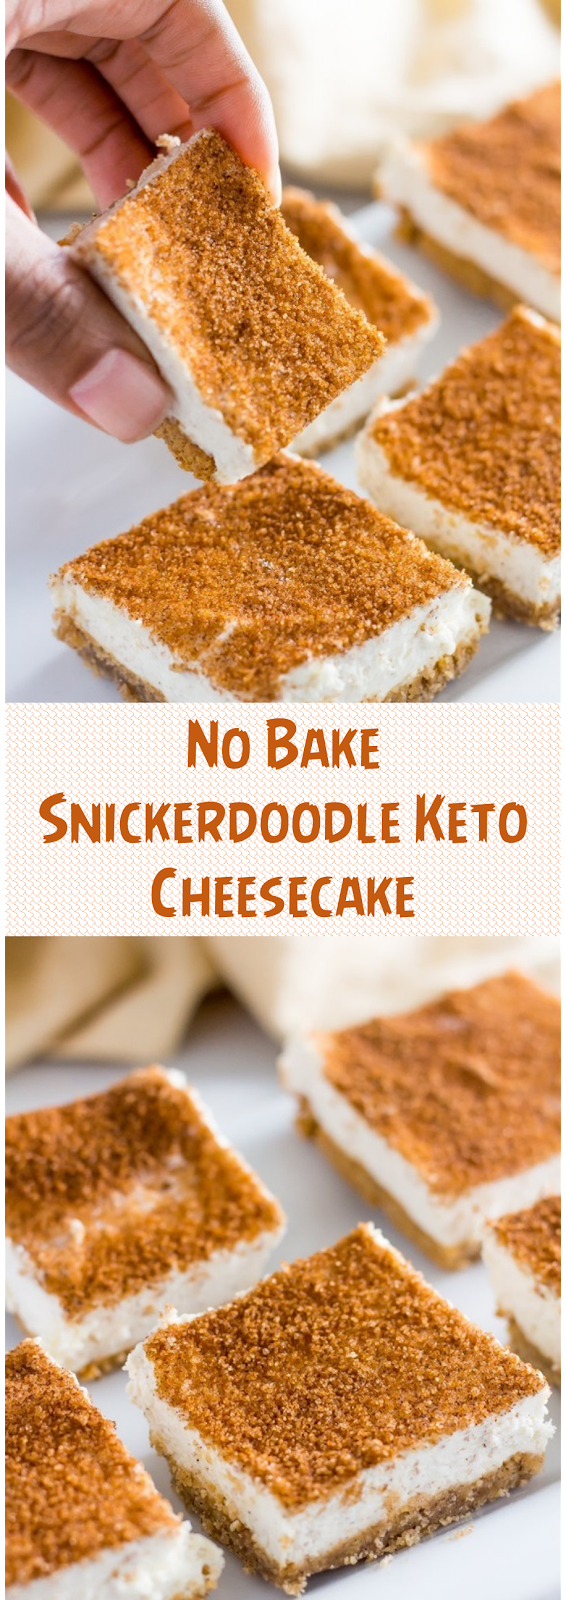 No Bake Snickerdoodle Keto Cheesecake